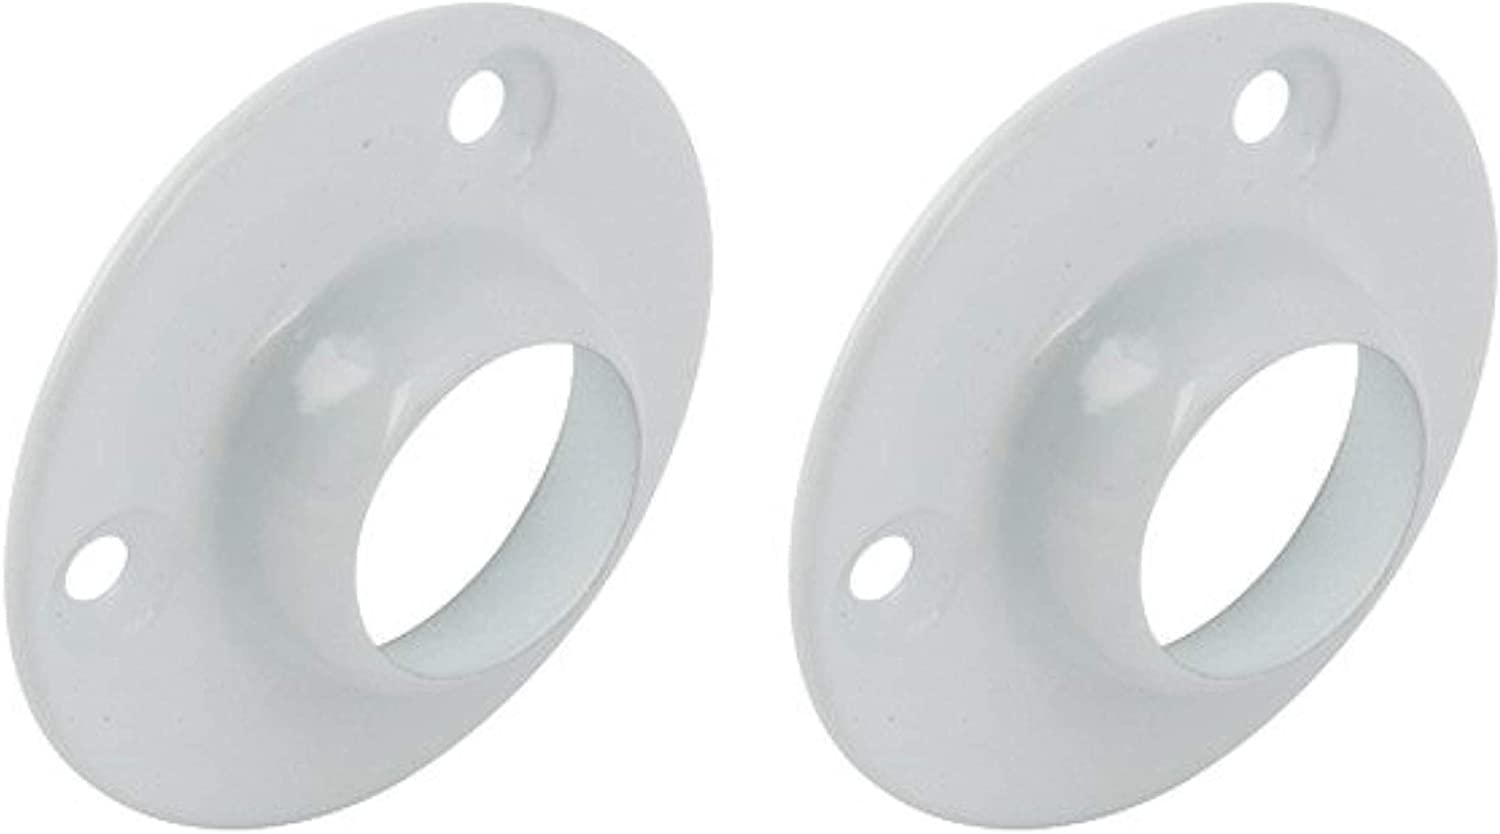 Round Wardrobe Rail Rod Socket End Support Bracket Rings White 19mm Heavy Duty